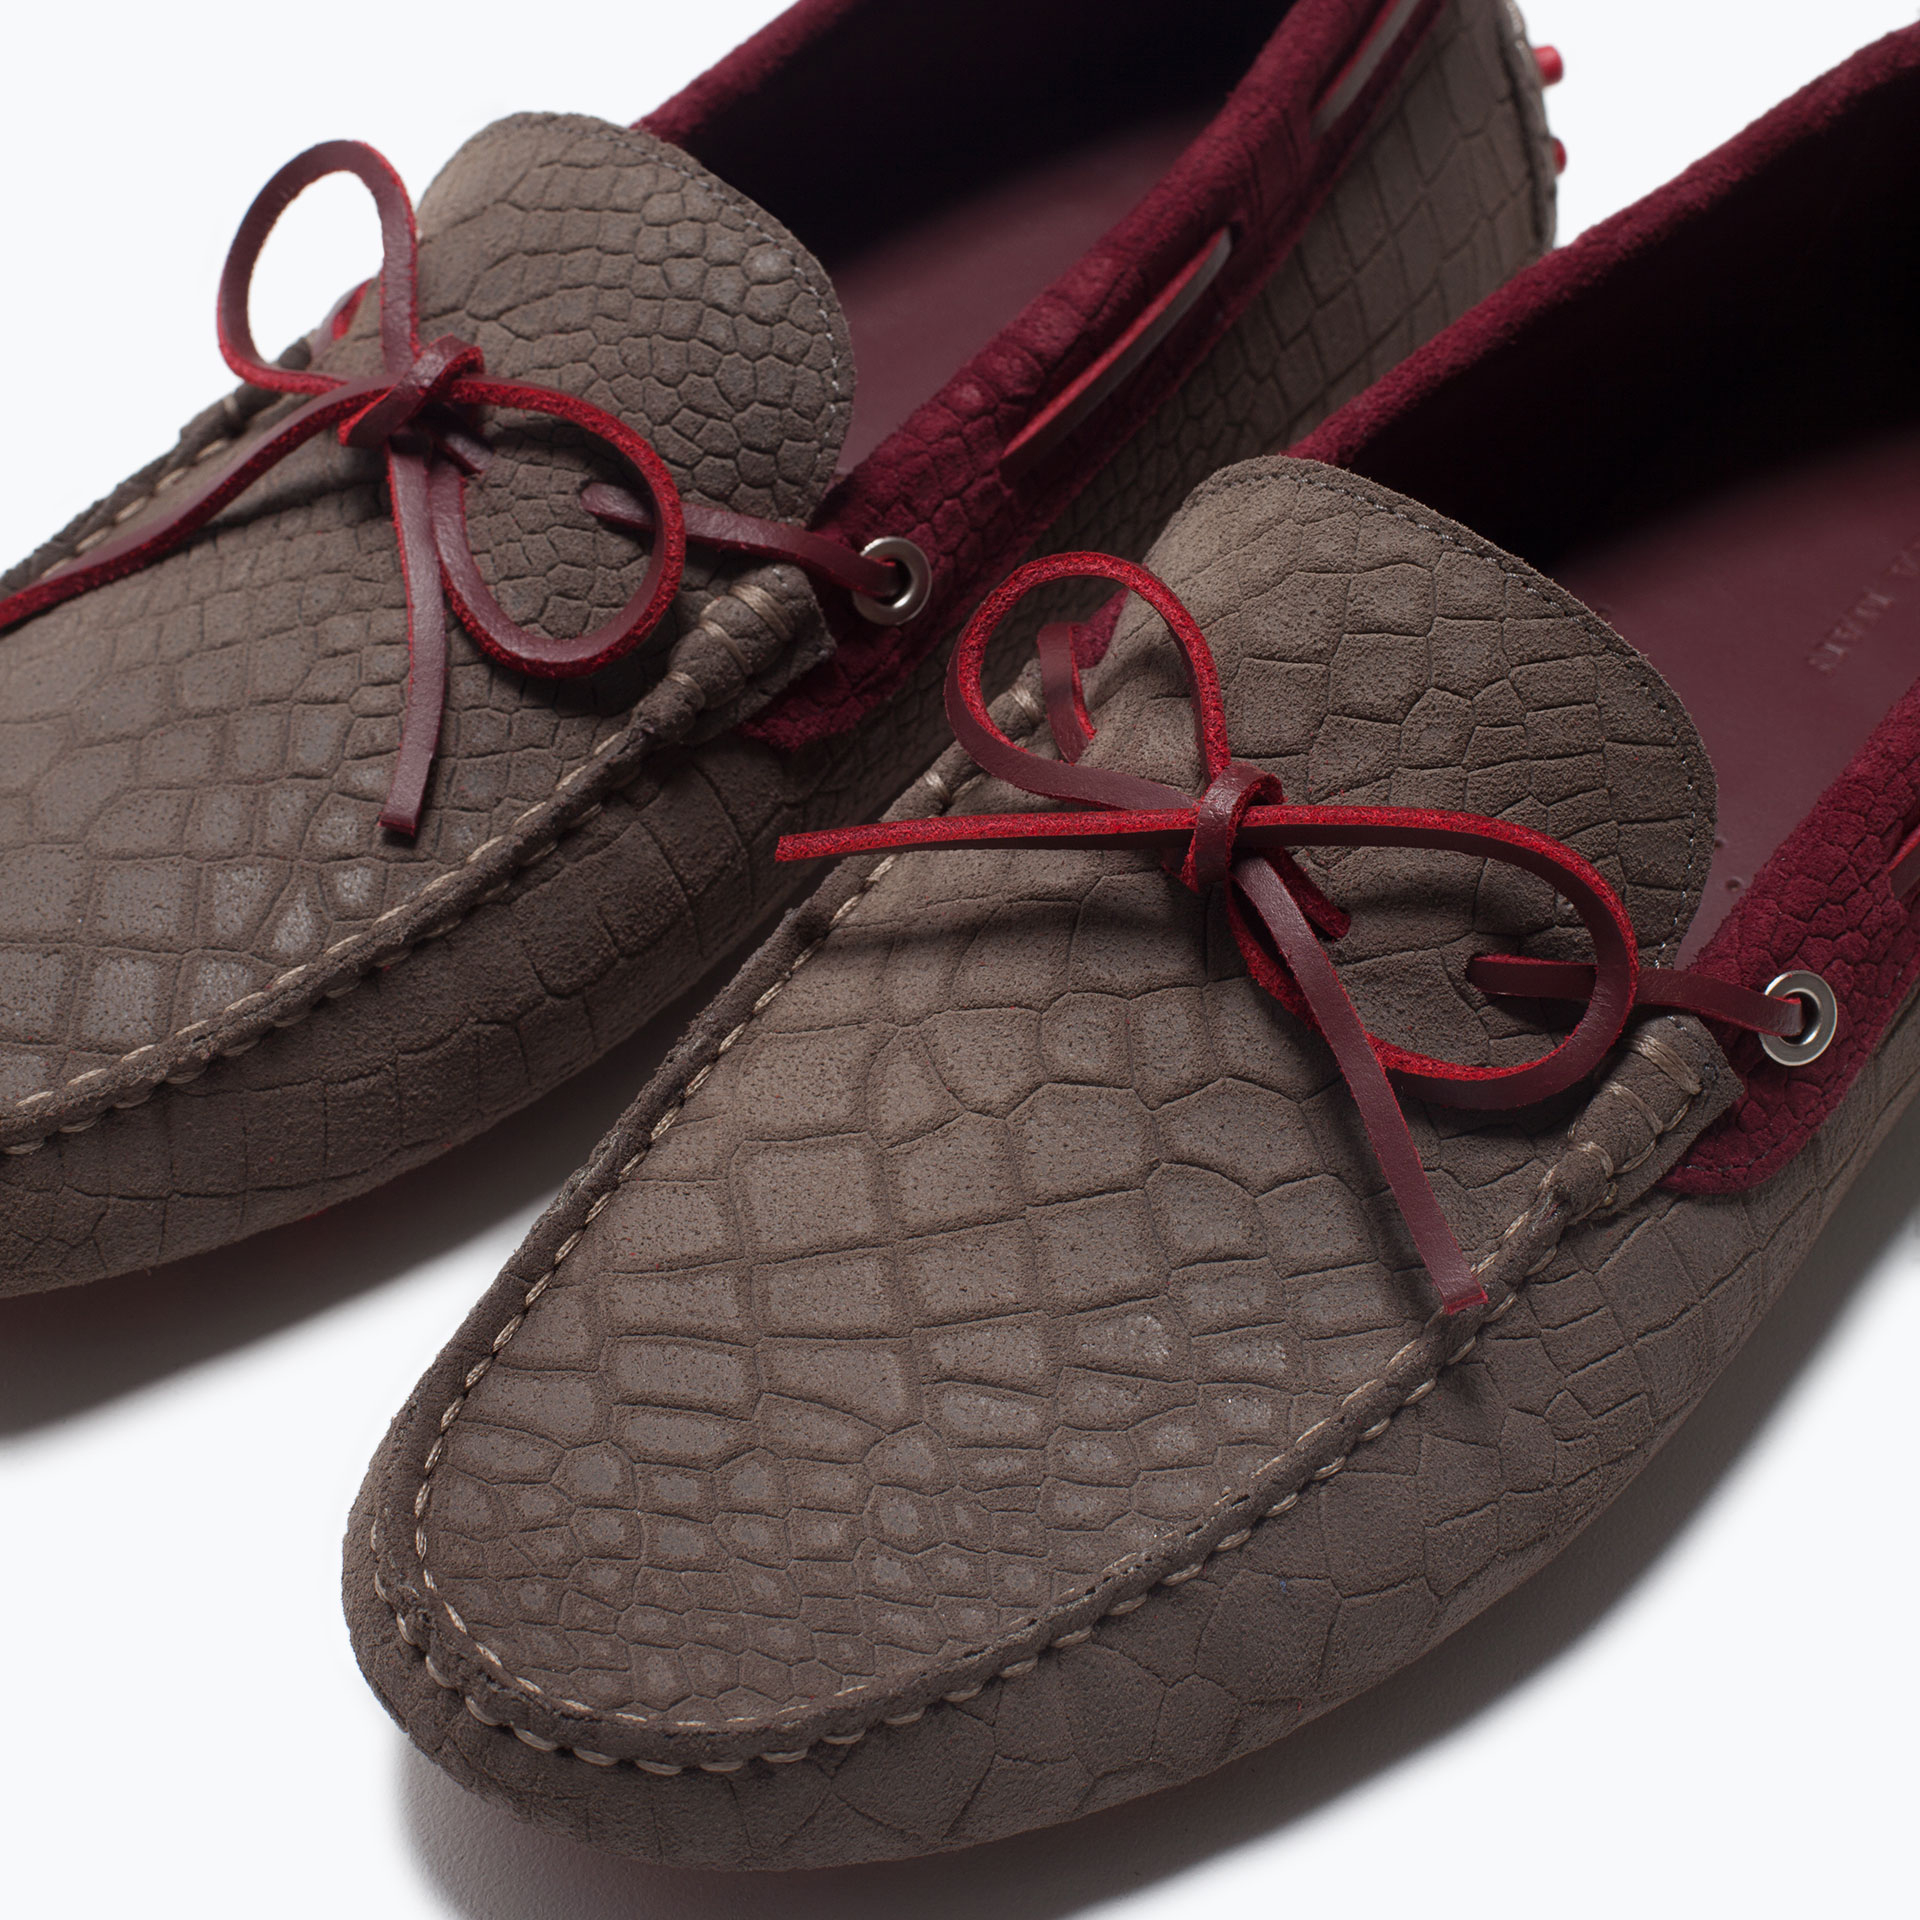 Mock Croc Leather Driving Shoes With Contrasting Color